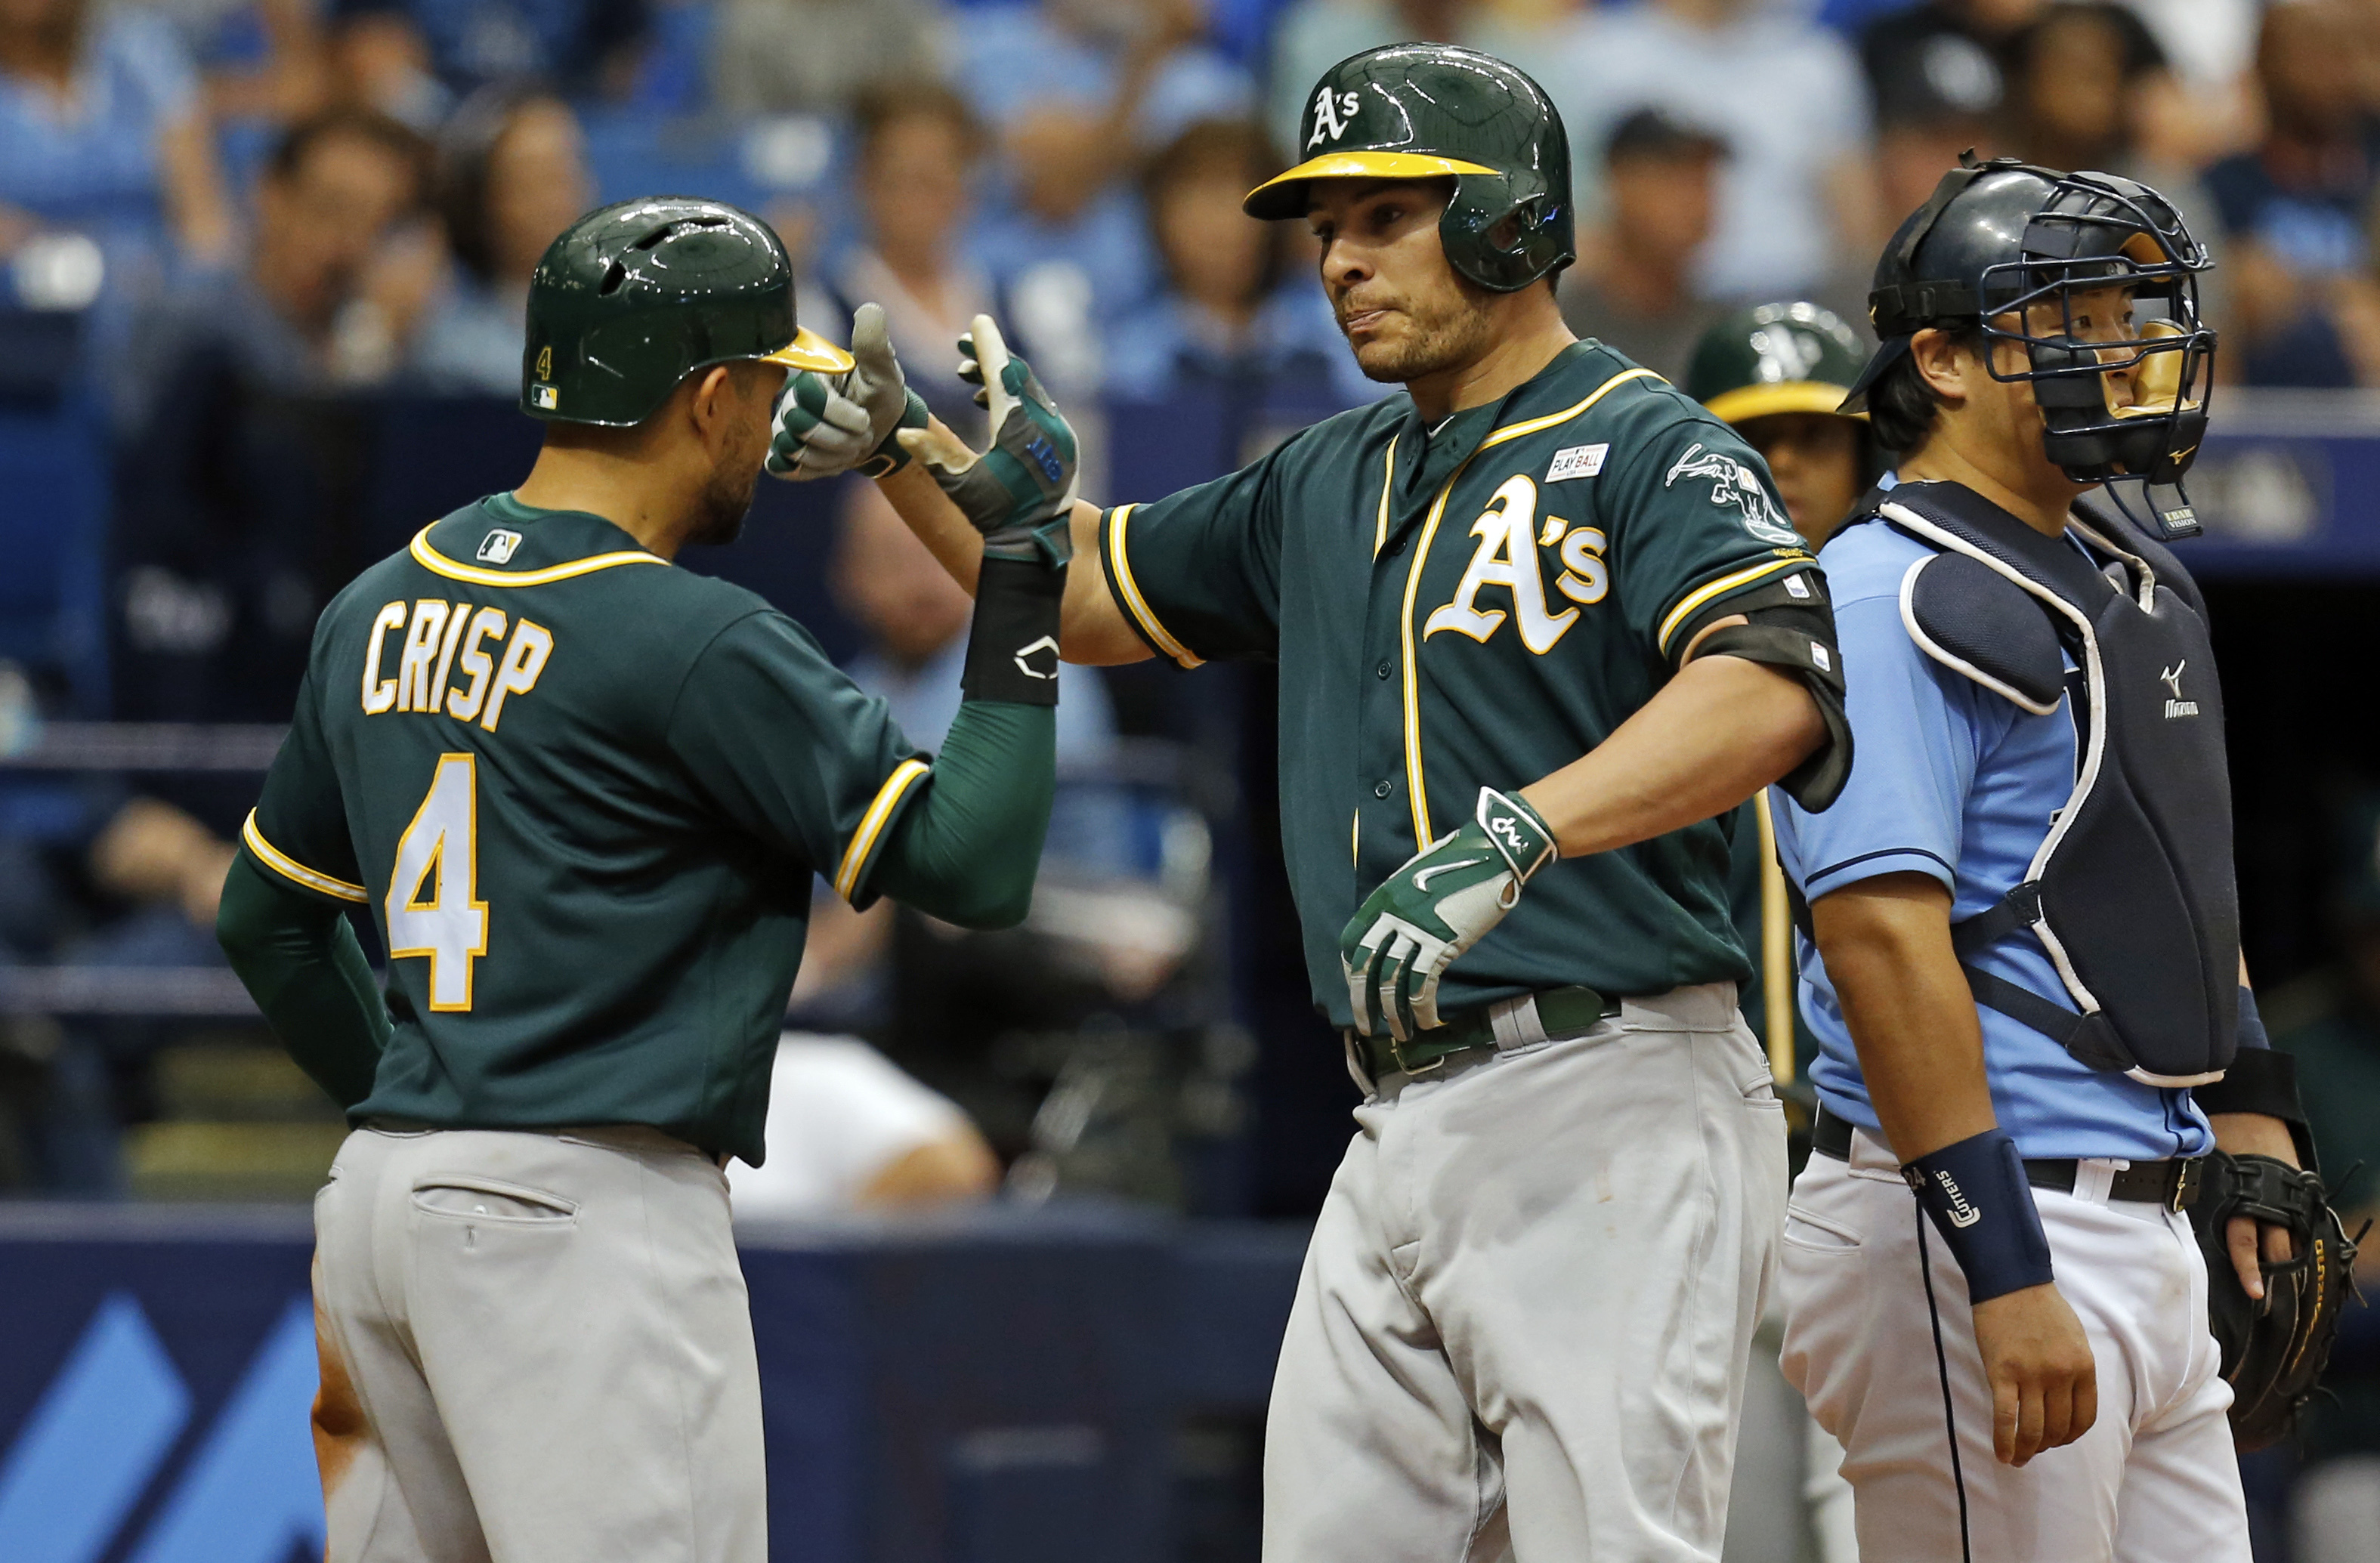 Oakland Athletics' Danny Valencia, center, is congratulated by Coco Crisp (4) in front of Tampa Bay Rays catcher Hank Conger after his home run scored them both during the fifth inning of a baseball game Sunday, May 15, 2016, in St. Petersburg, Fla. (AP P